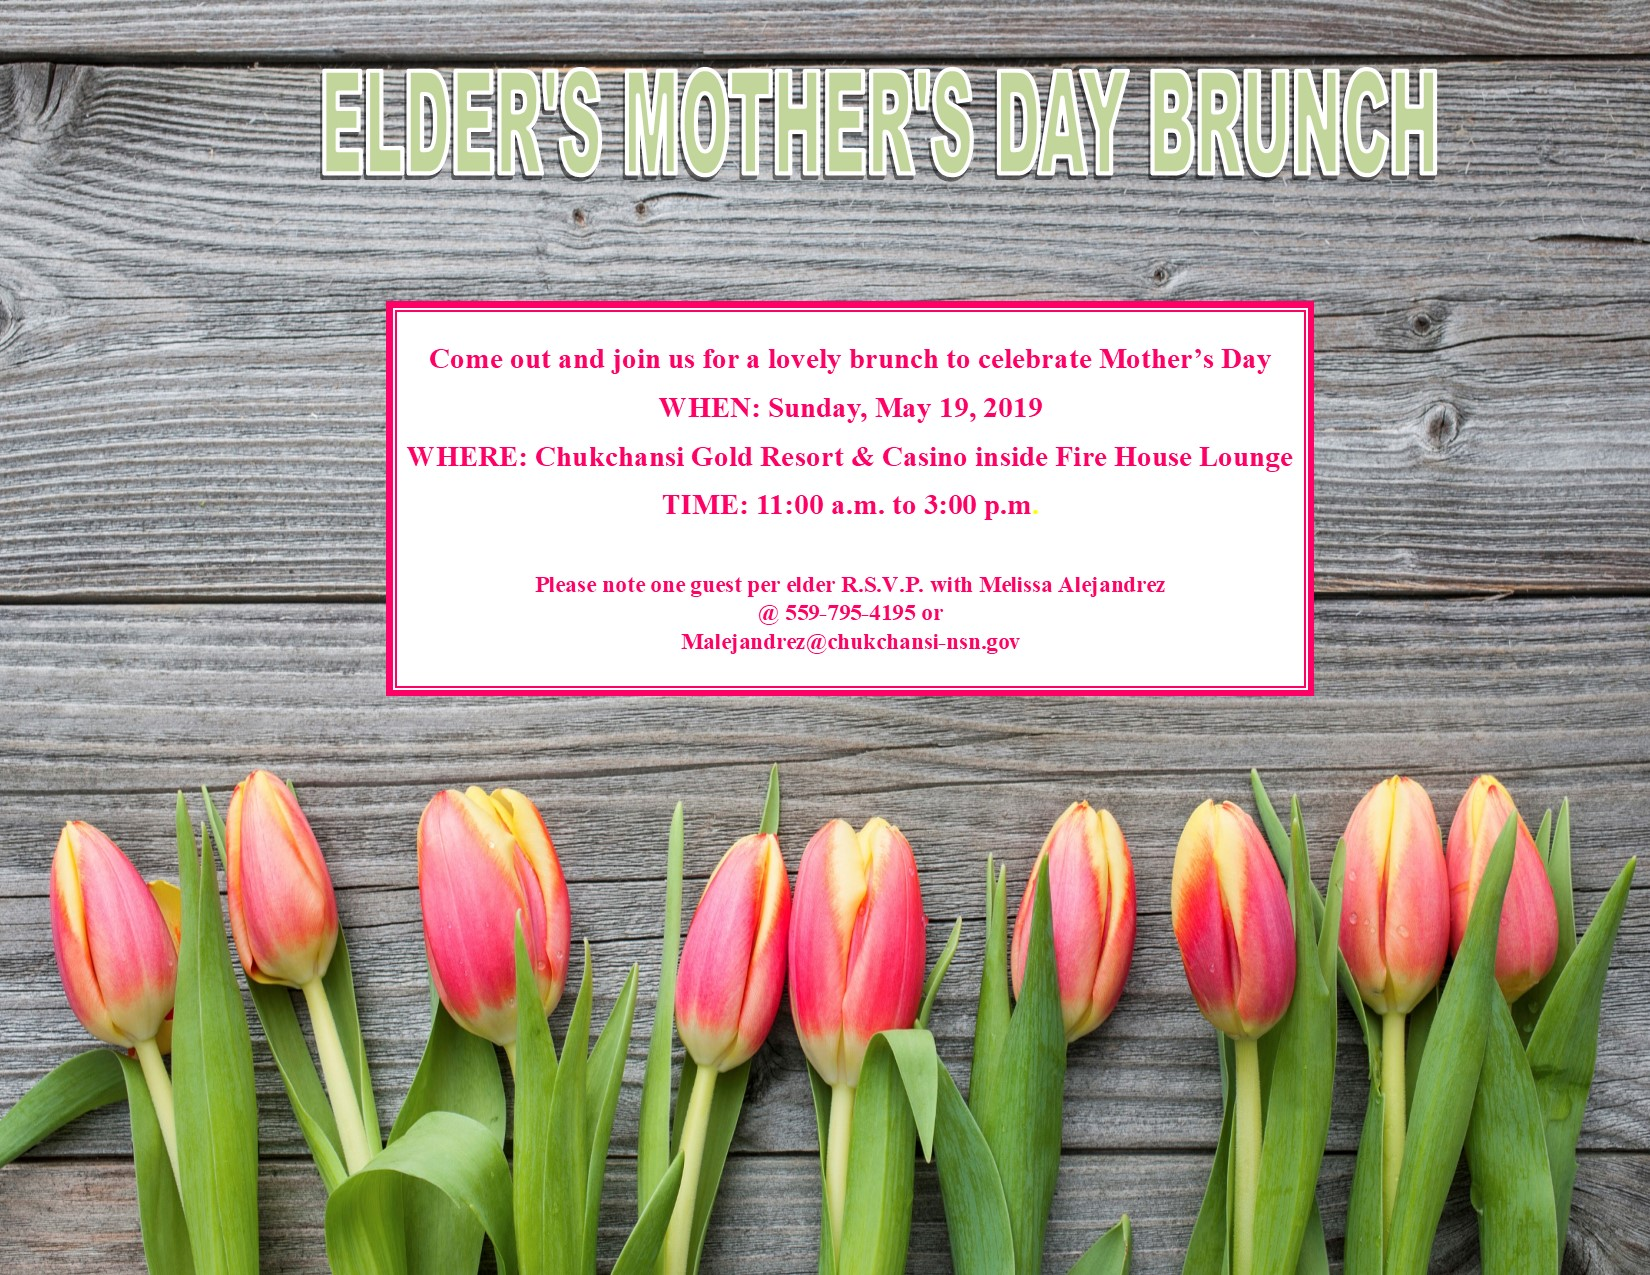 Tribal Elder's Mother's Day Brunch @ Elders Mother's Day Brunch